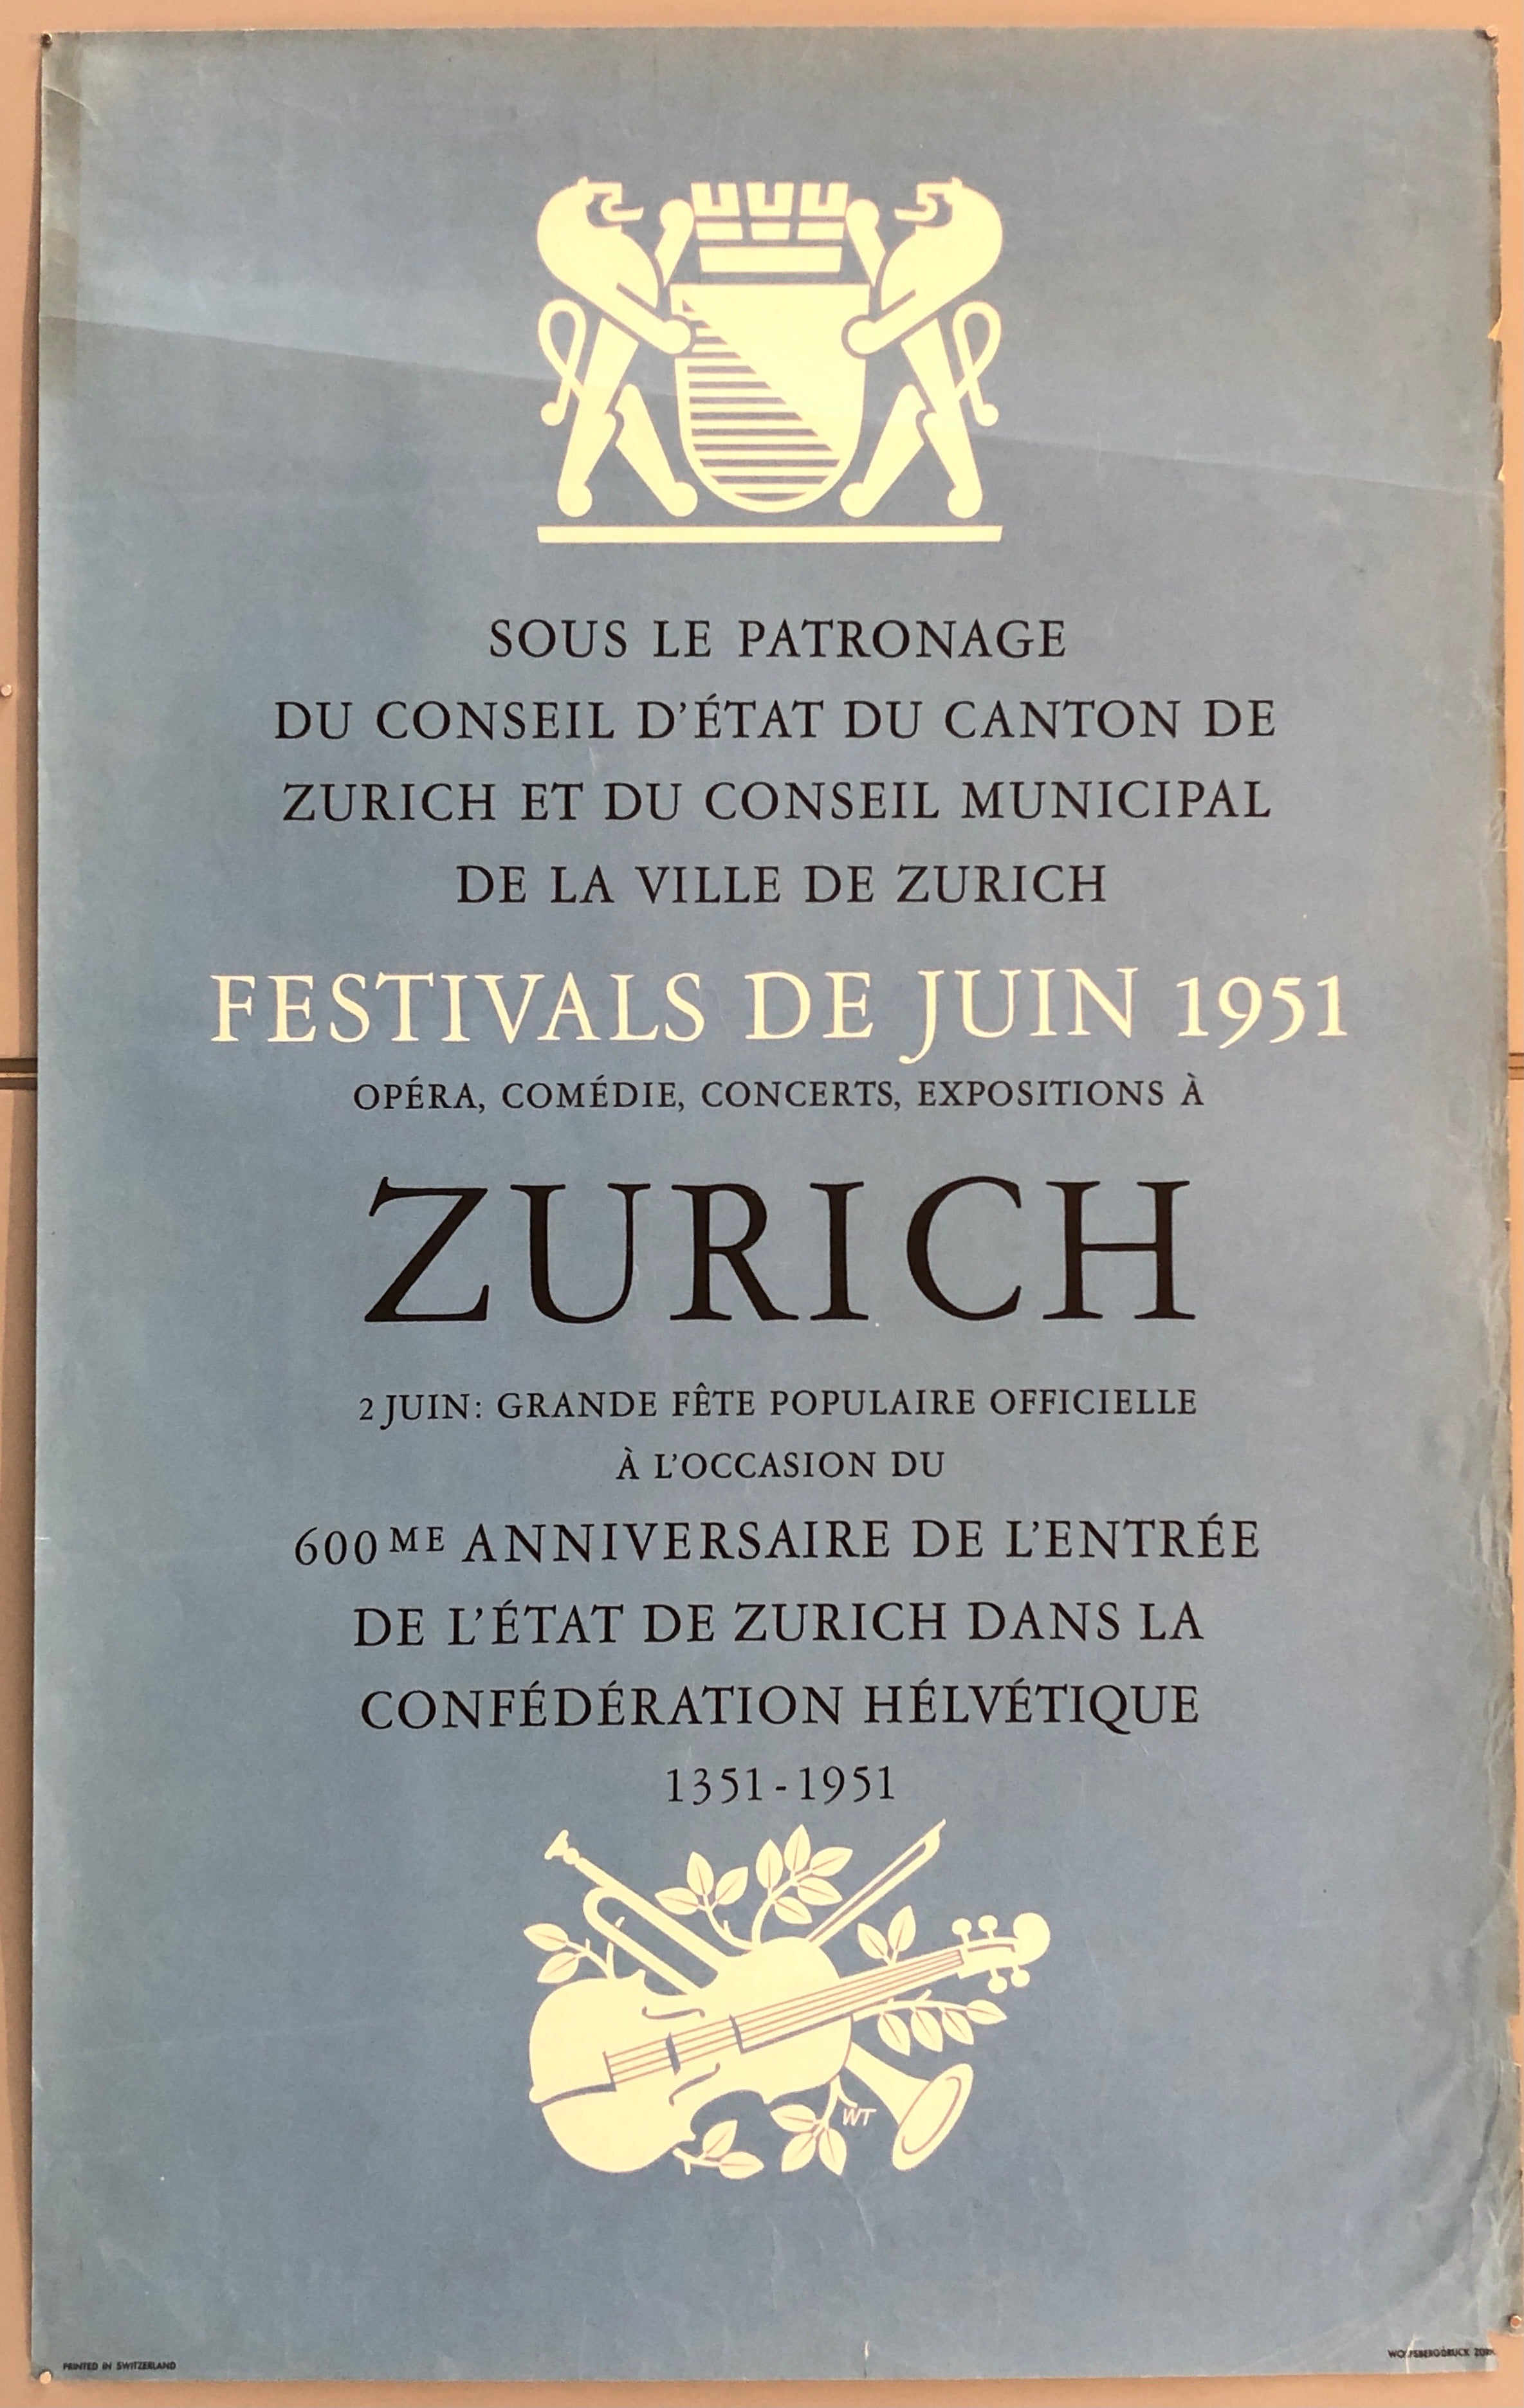 Baby blue poster with text describing a June Festival